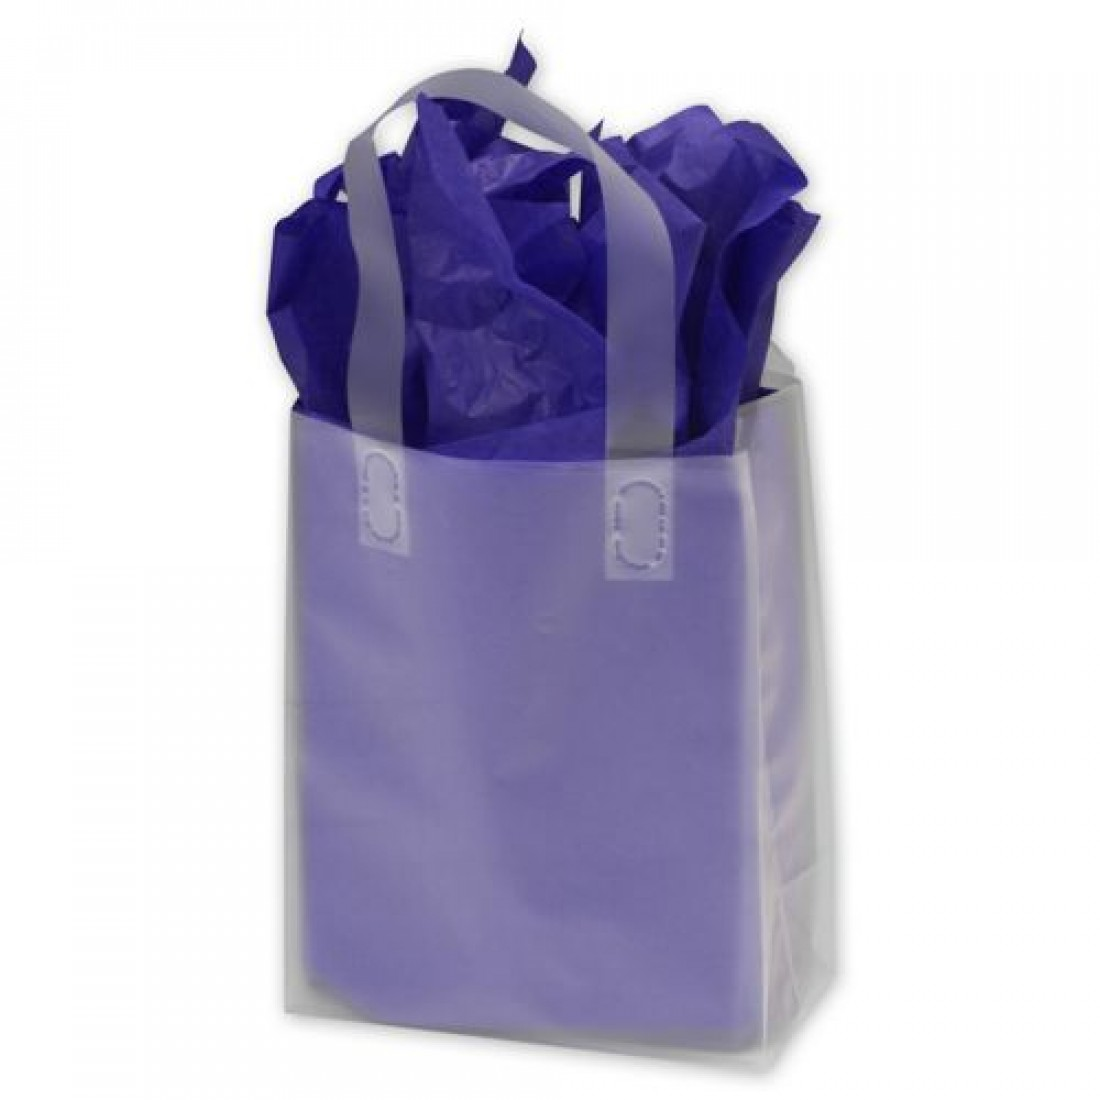 Clear Frosted High Density Flex Loop Shoppers 8 x 4 x 10